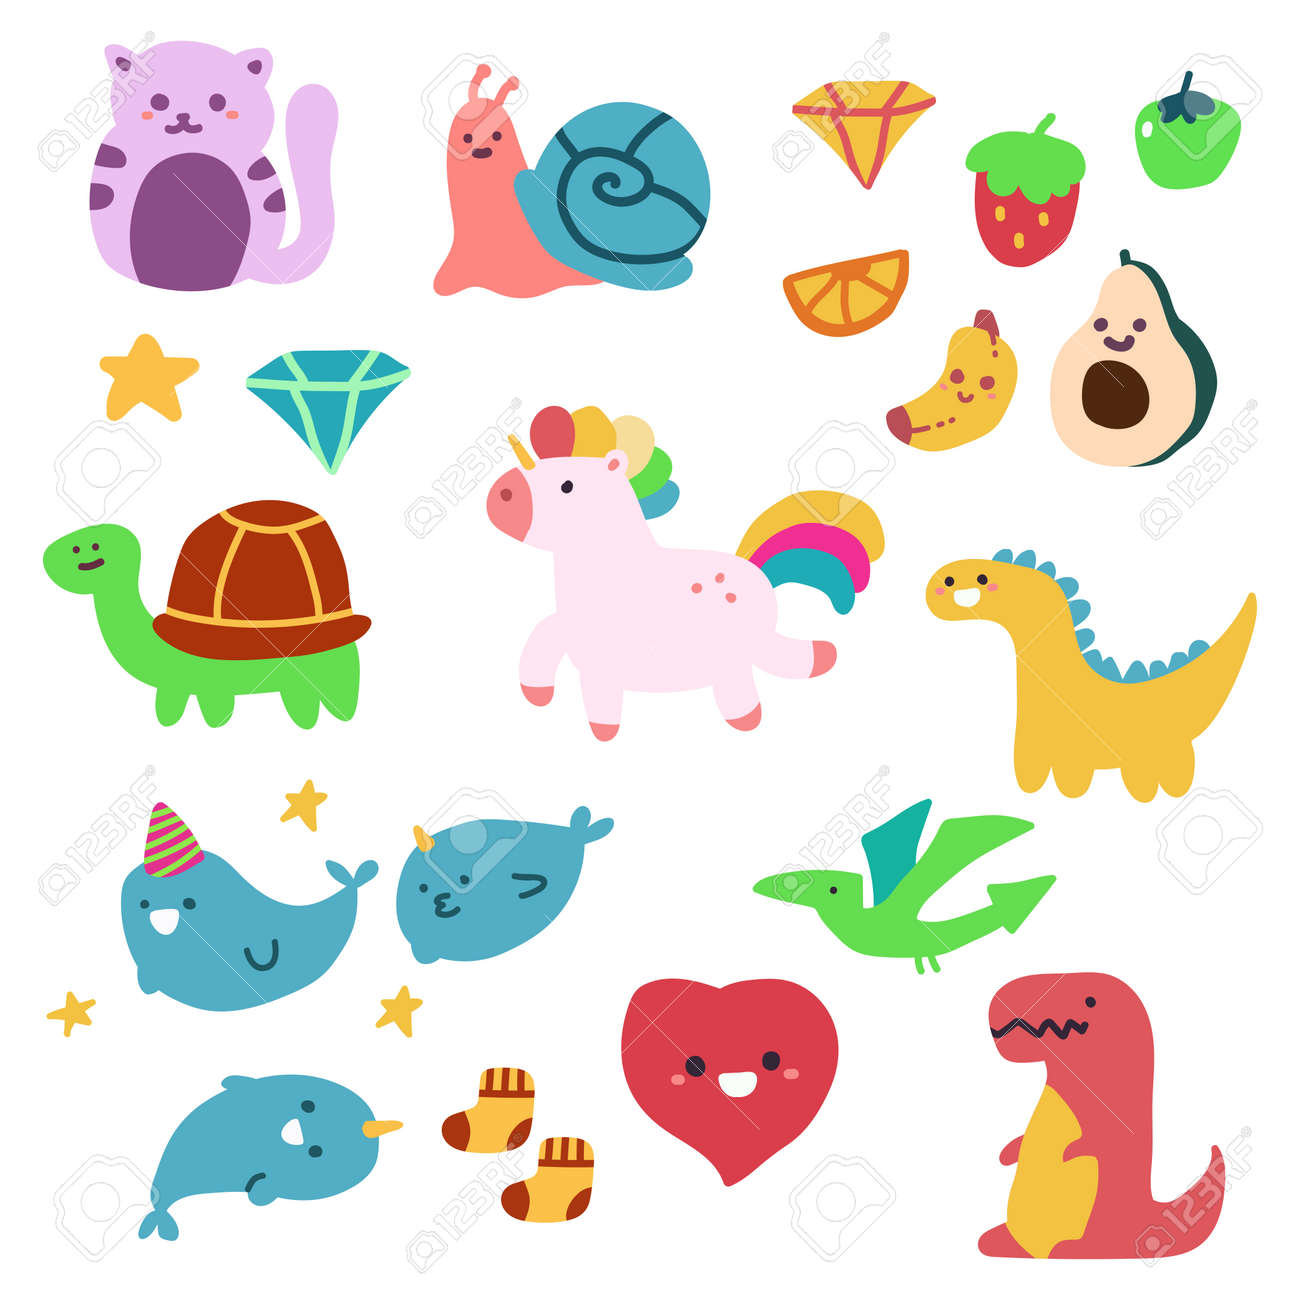 Cute children's drawings animal and fruit vector cartoon simple set isolated on white background. - 170638528